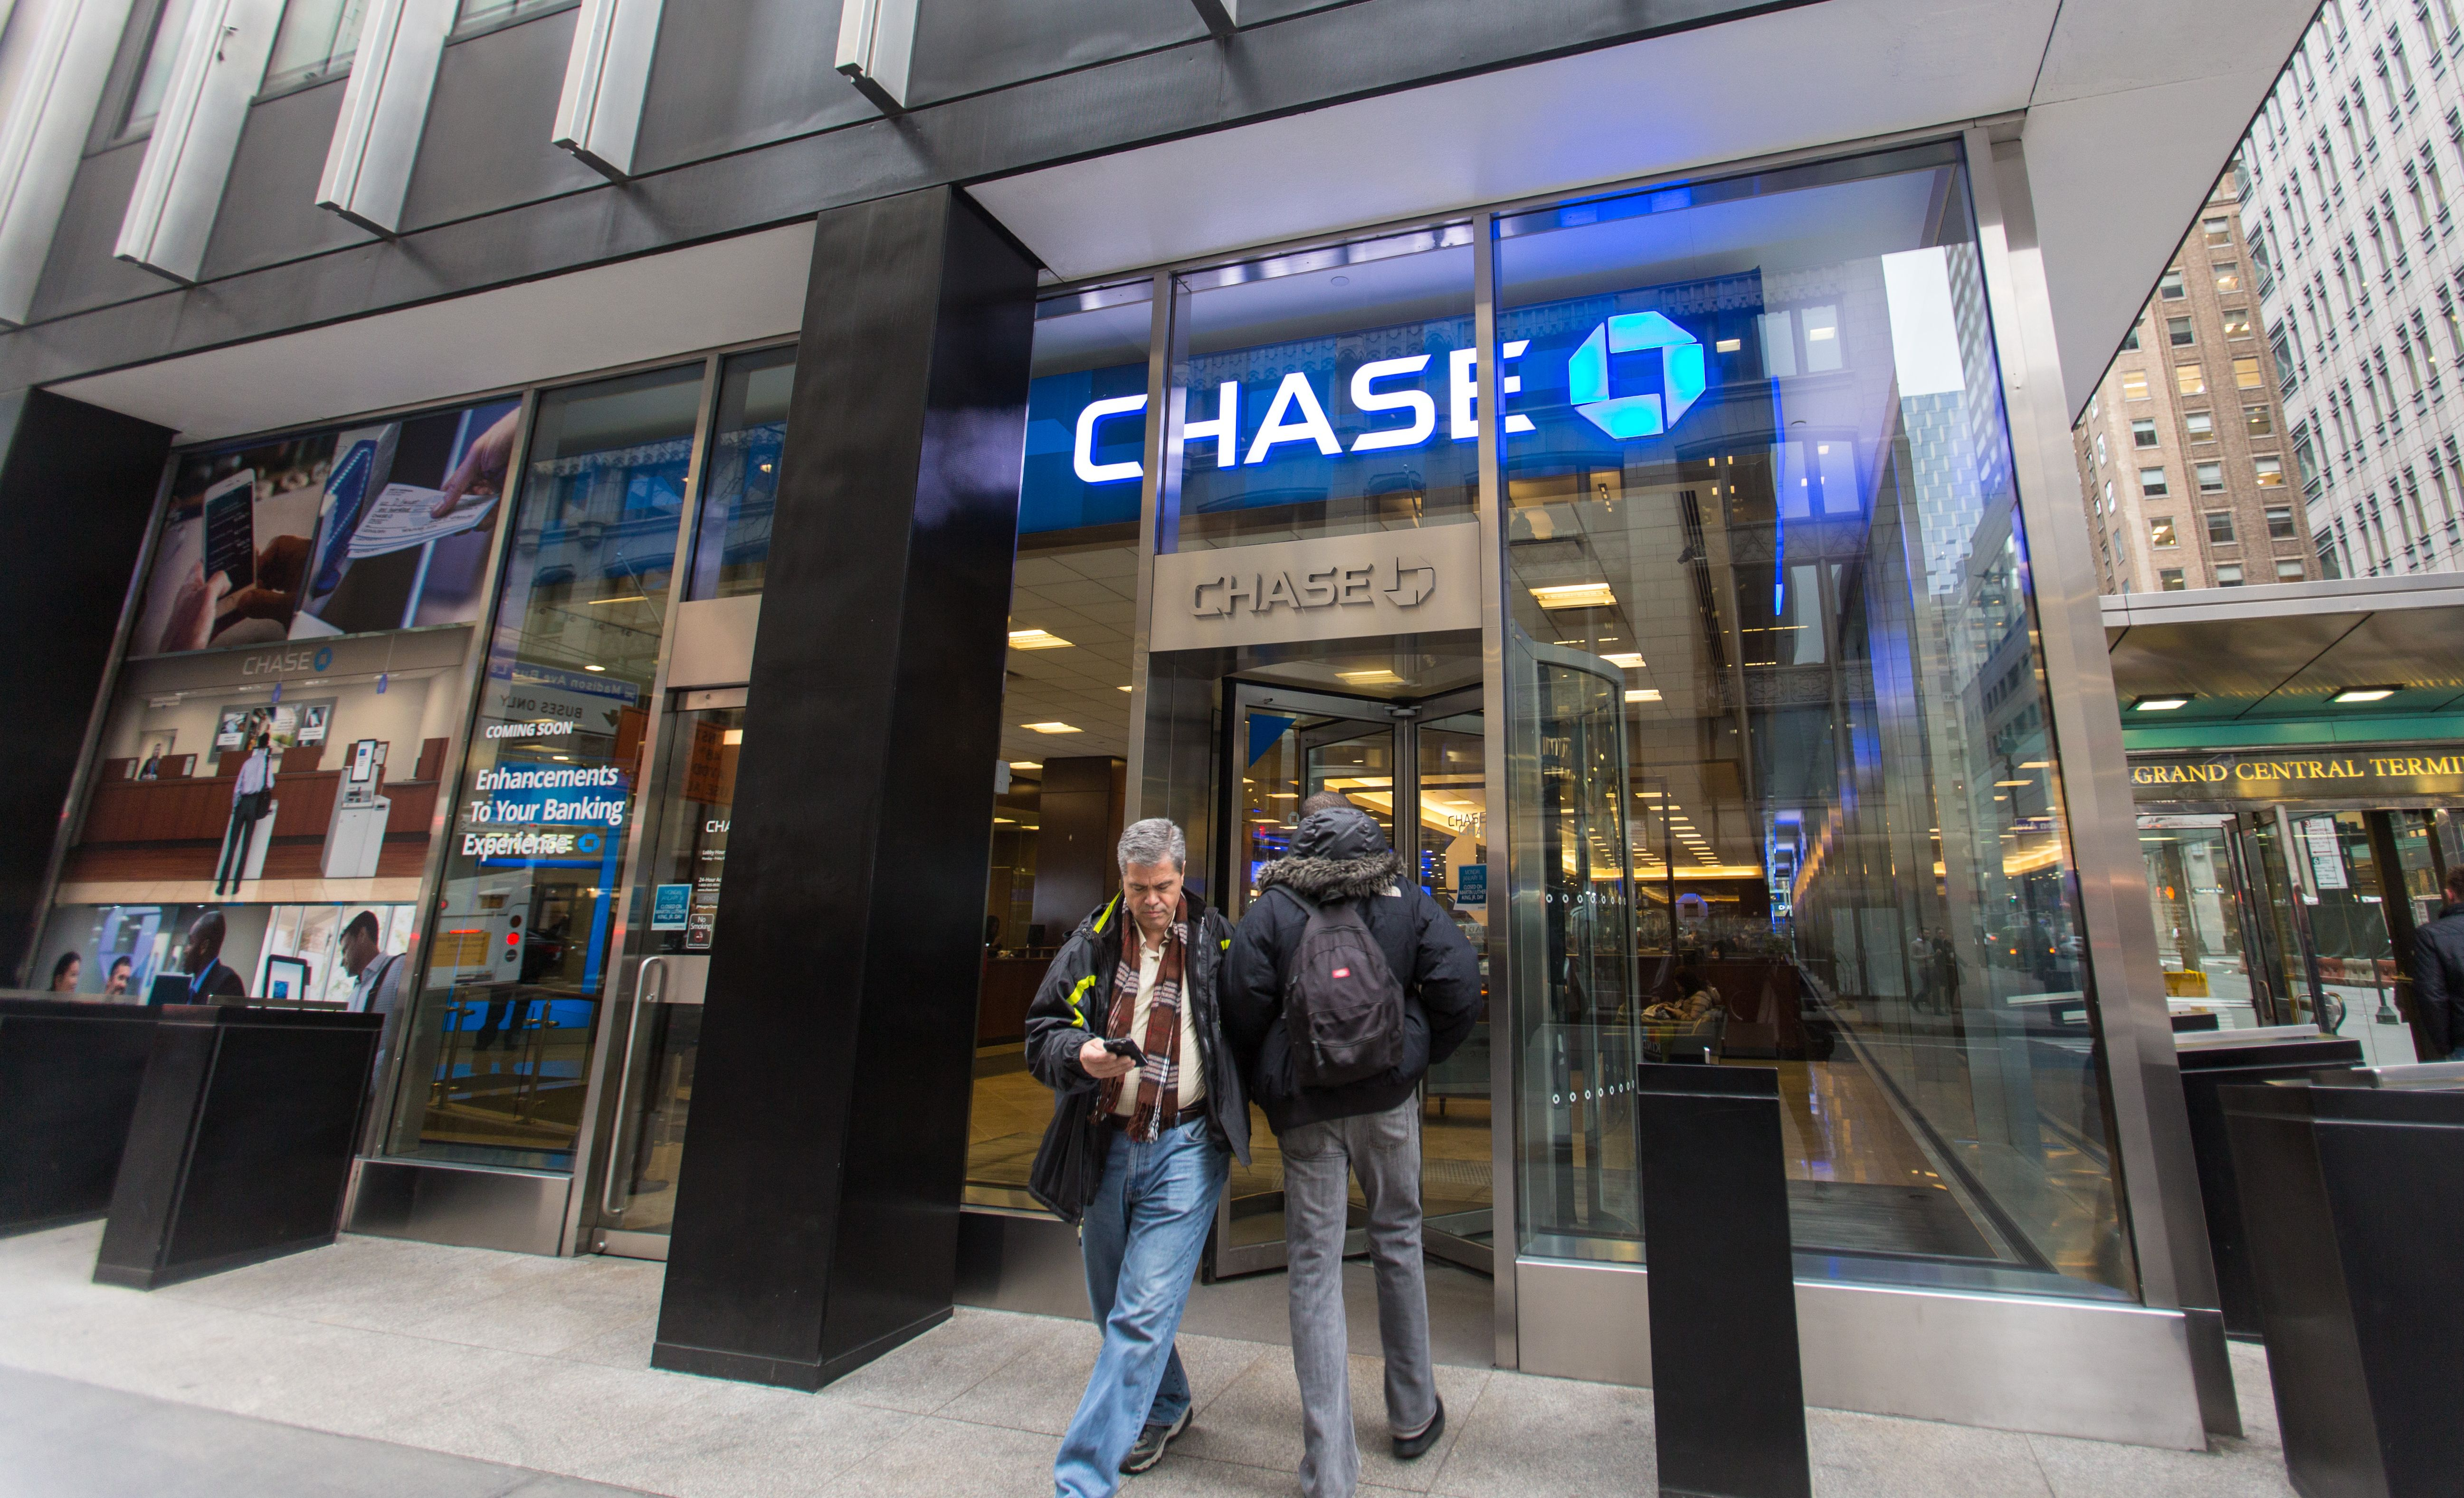 theepochtimes.com - Petr Svab - Chase Bank Denies Political Motives as Controversy Erupts Over Closed Accounts